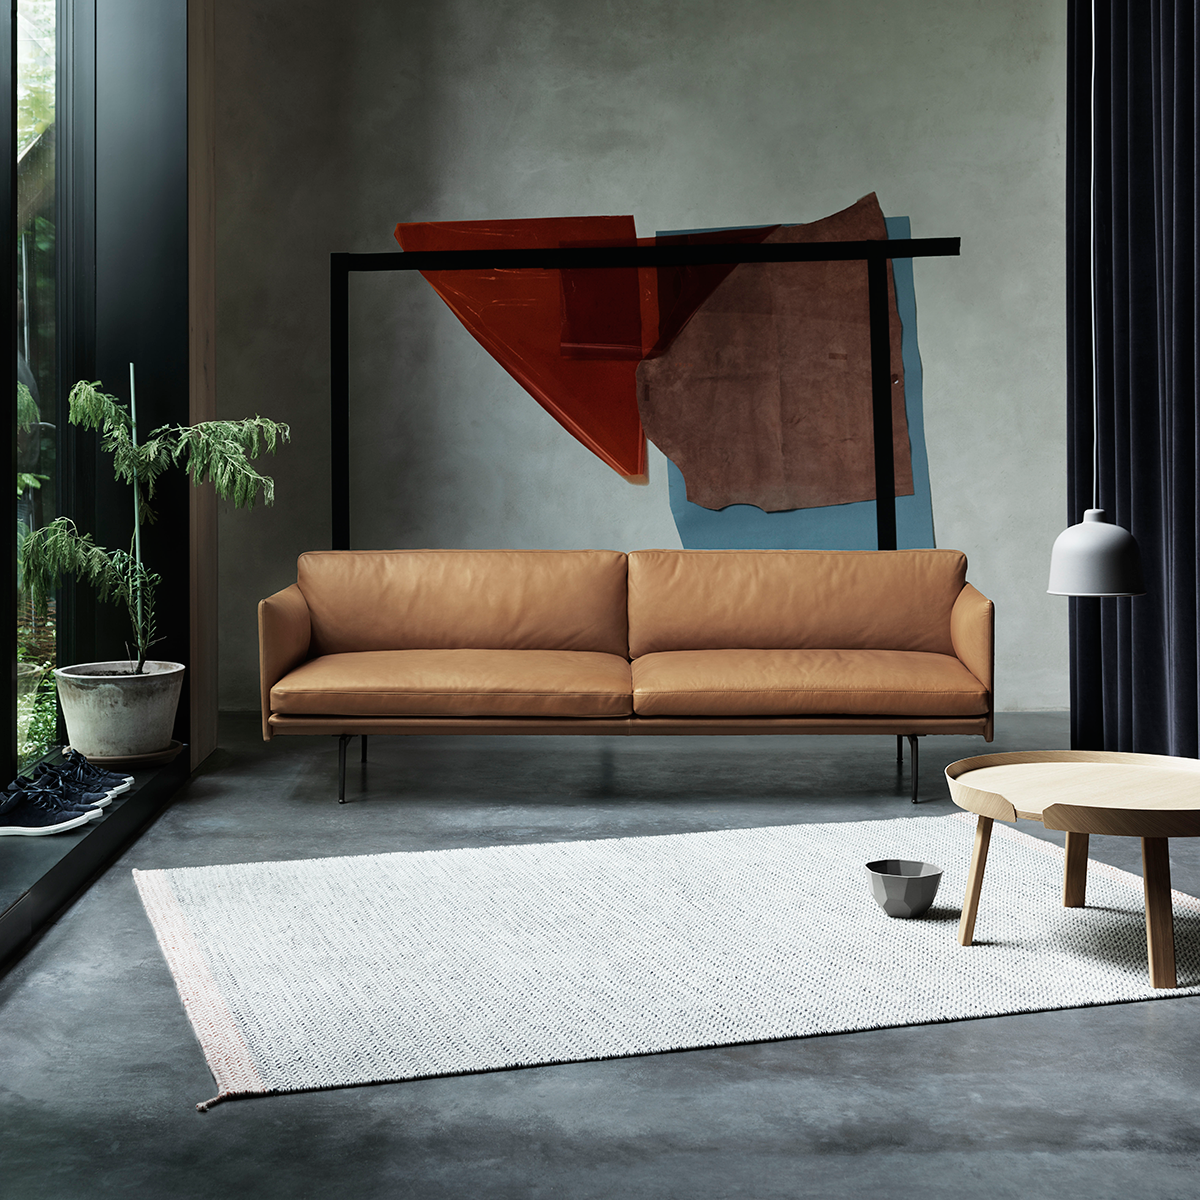 Muuto Outline 2-Seater Sofa in Leather 170cm 輪廓系列 雙人沙發 皮革版